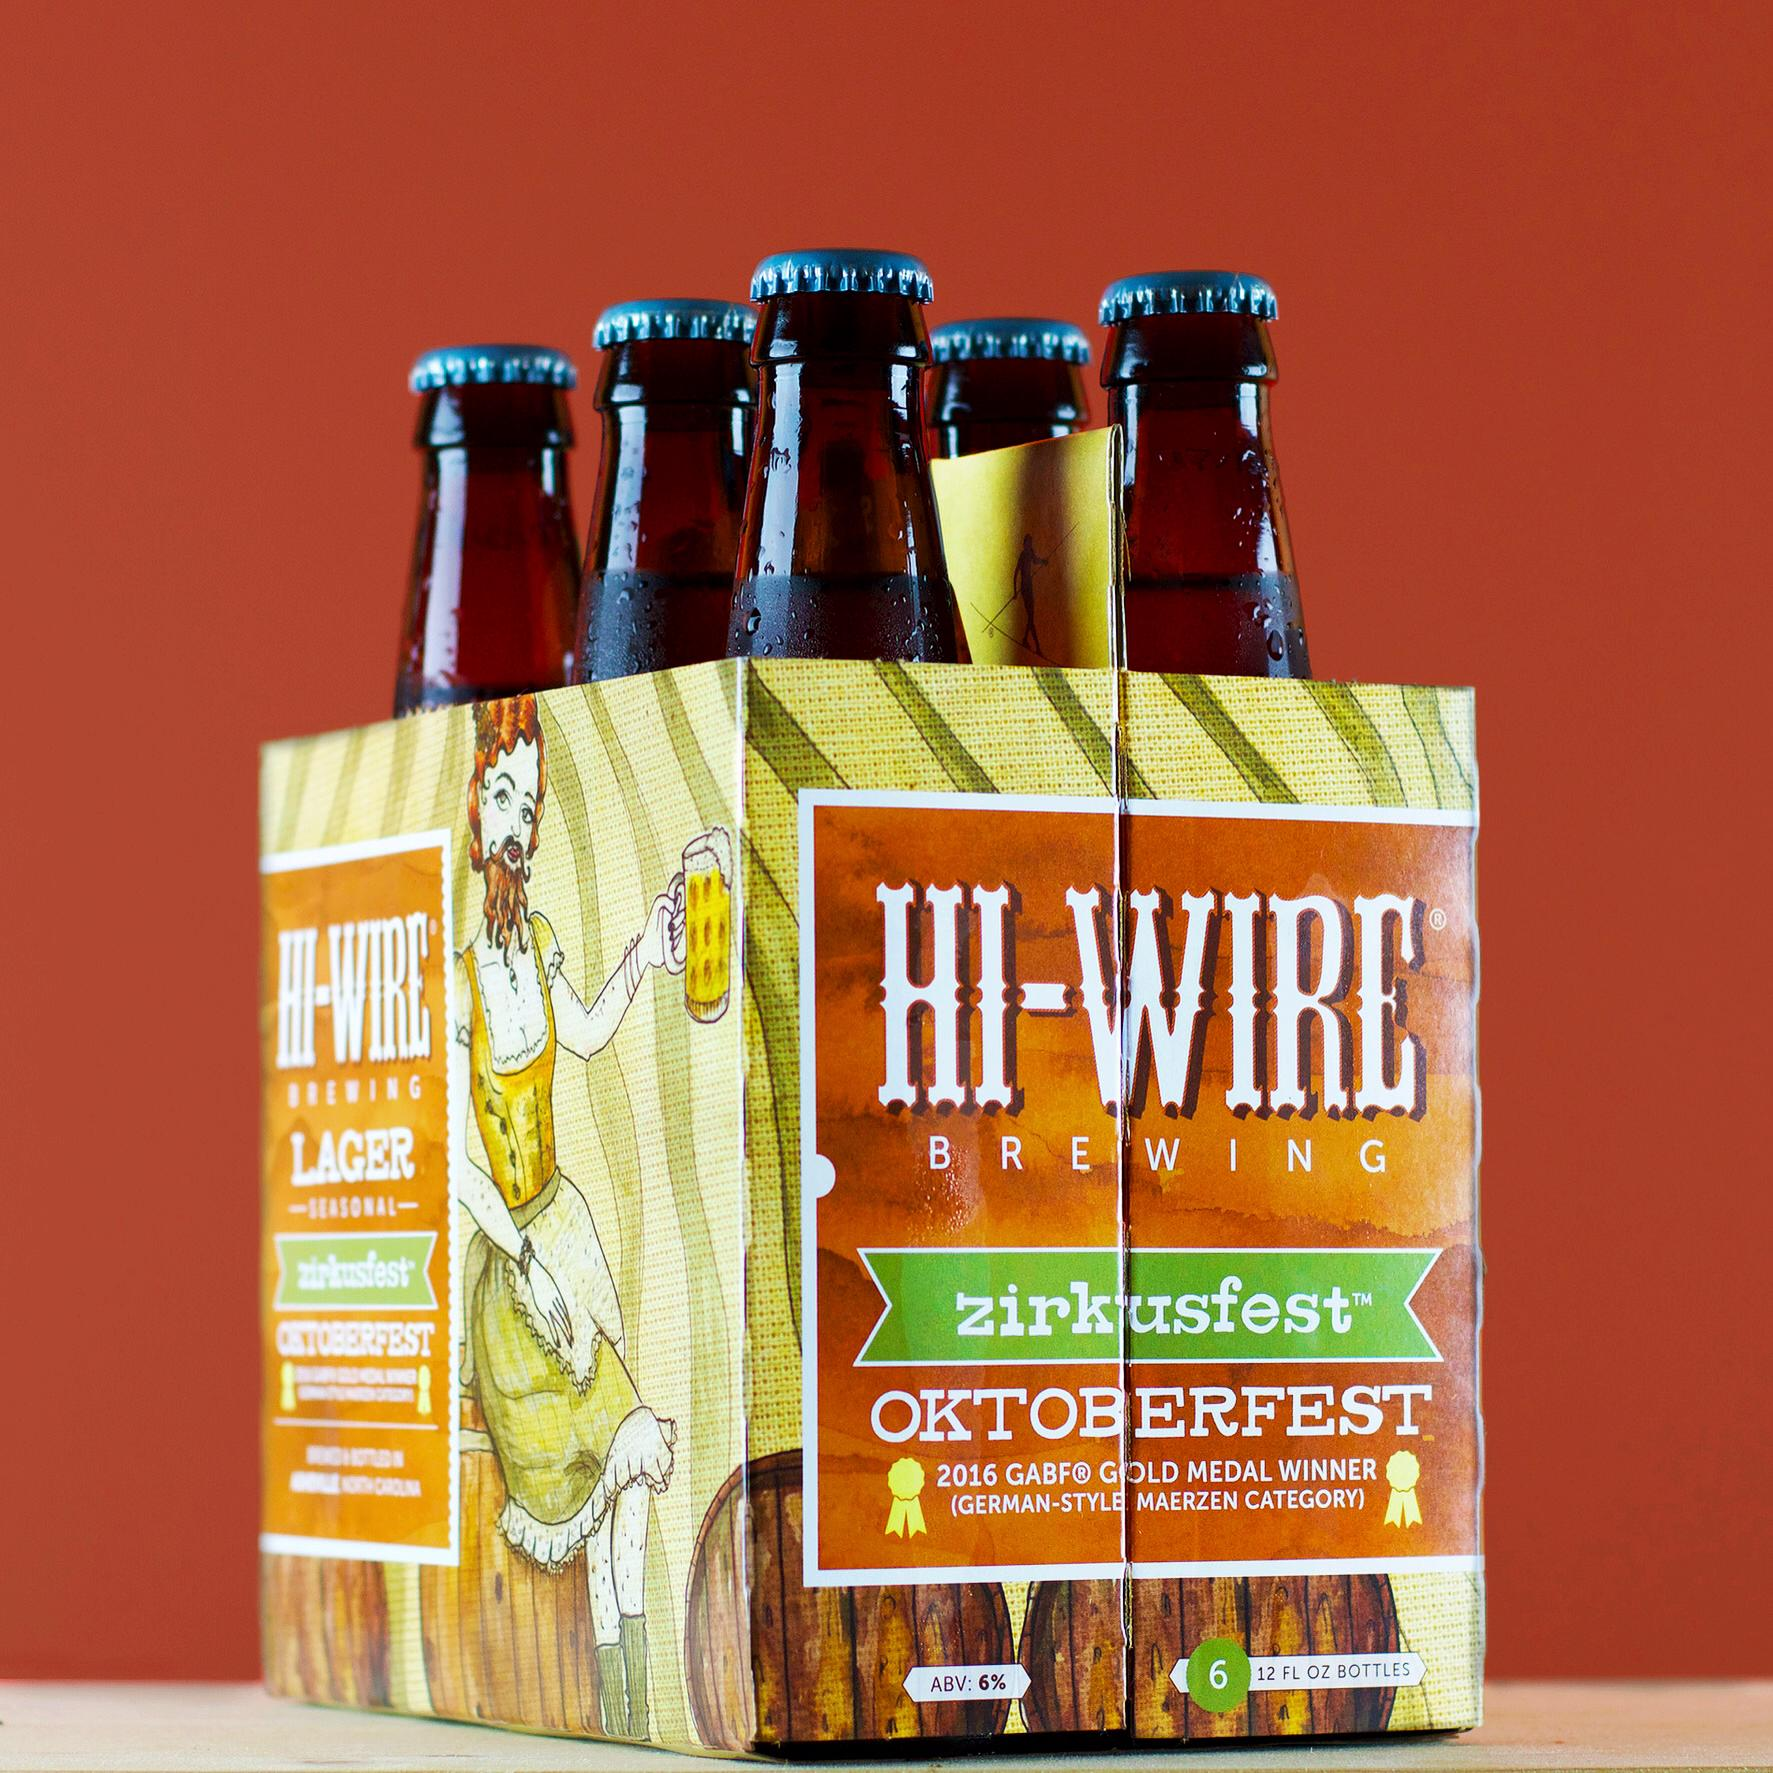 Hi-Wire Brewing Announces 2017 Fall Seasonals and Specialties | Brewbound.com